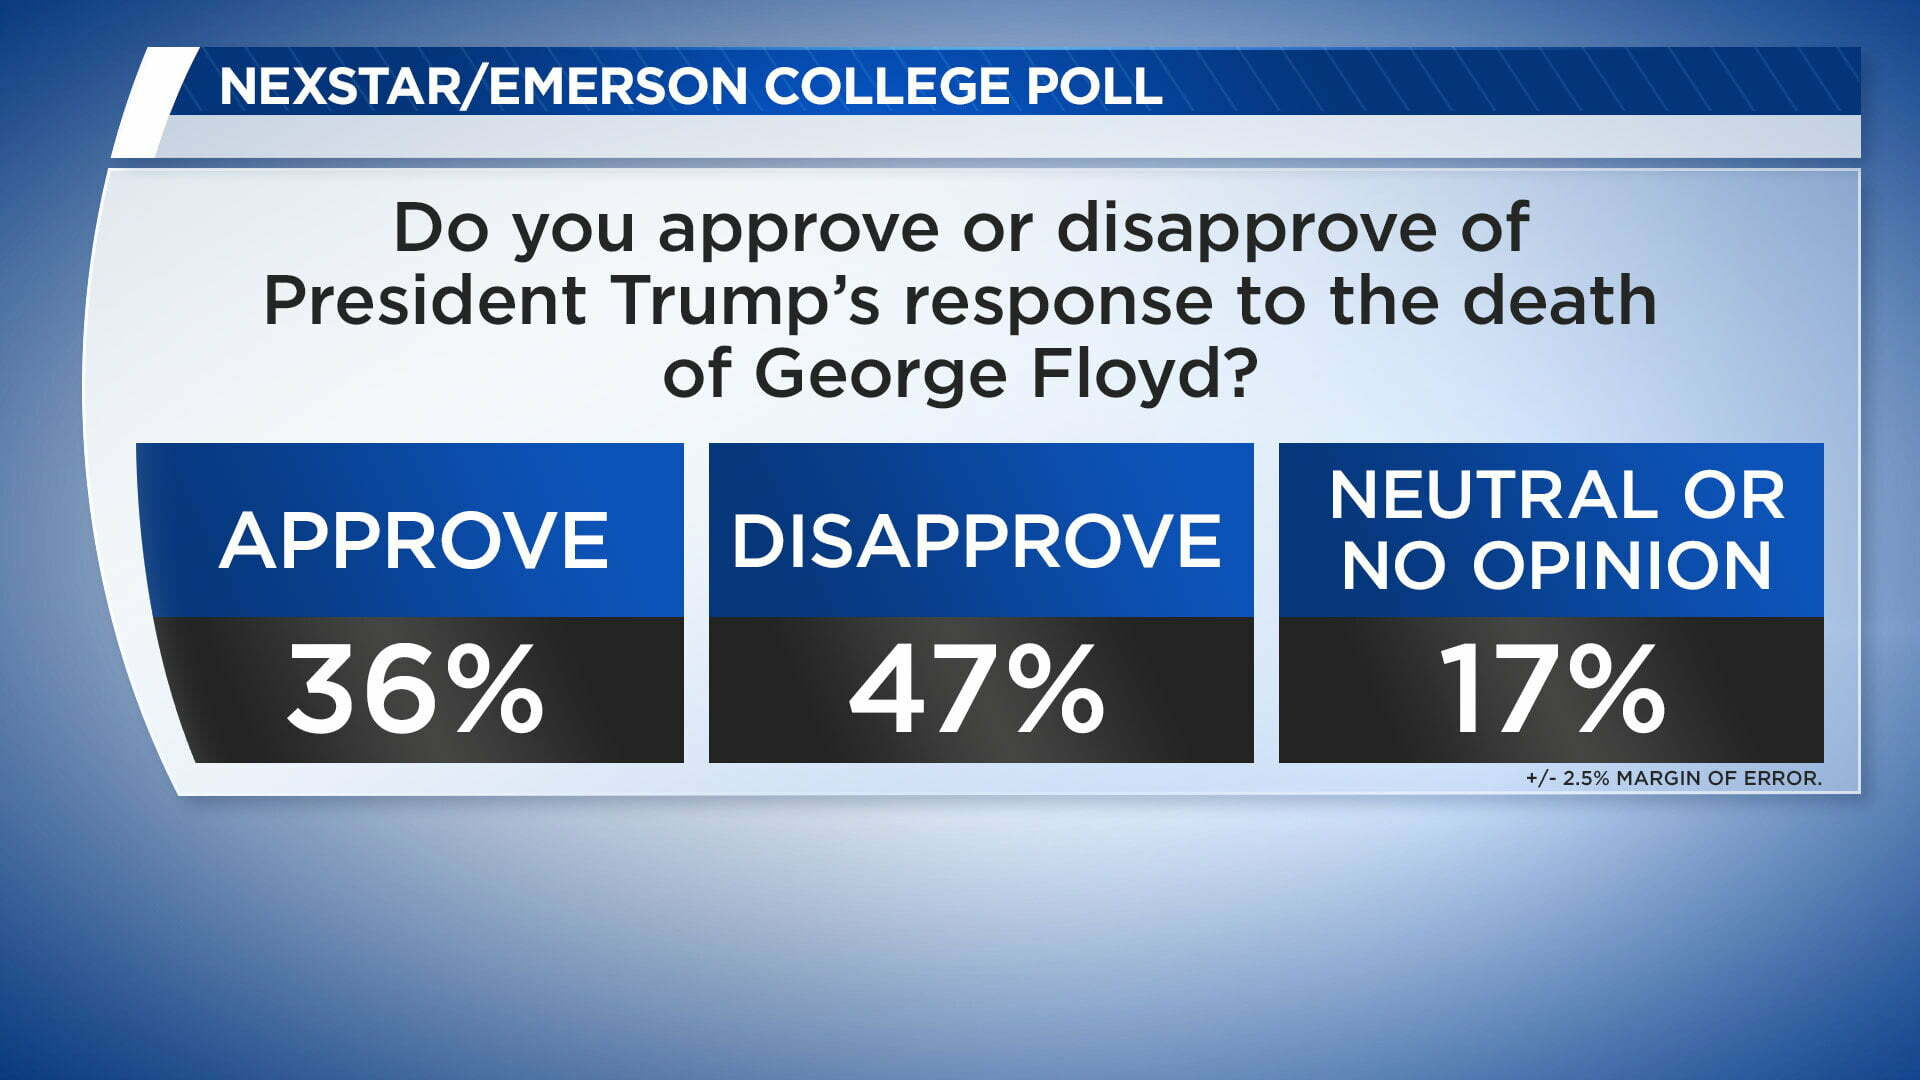 Exclusive poll shows support for George Floyd protests, disapproval of Trump's response 12